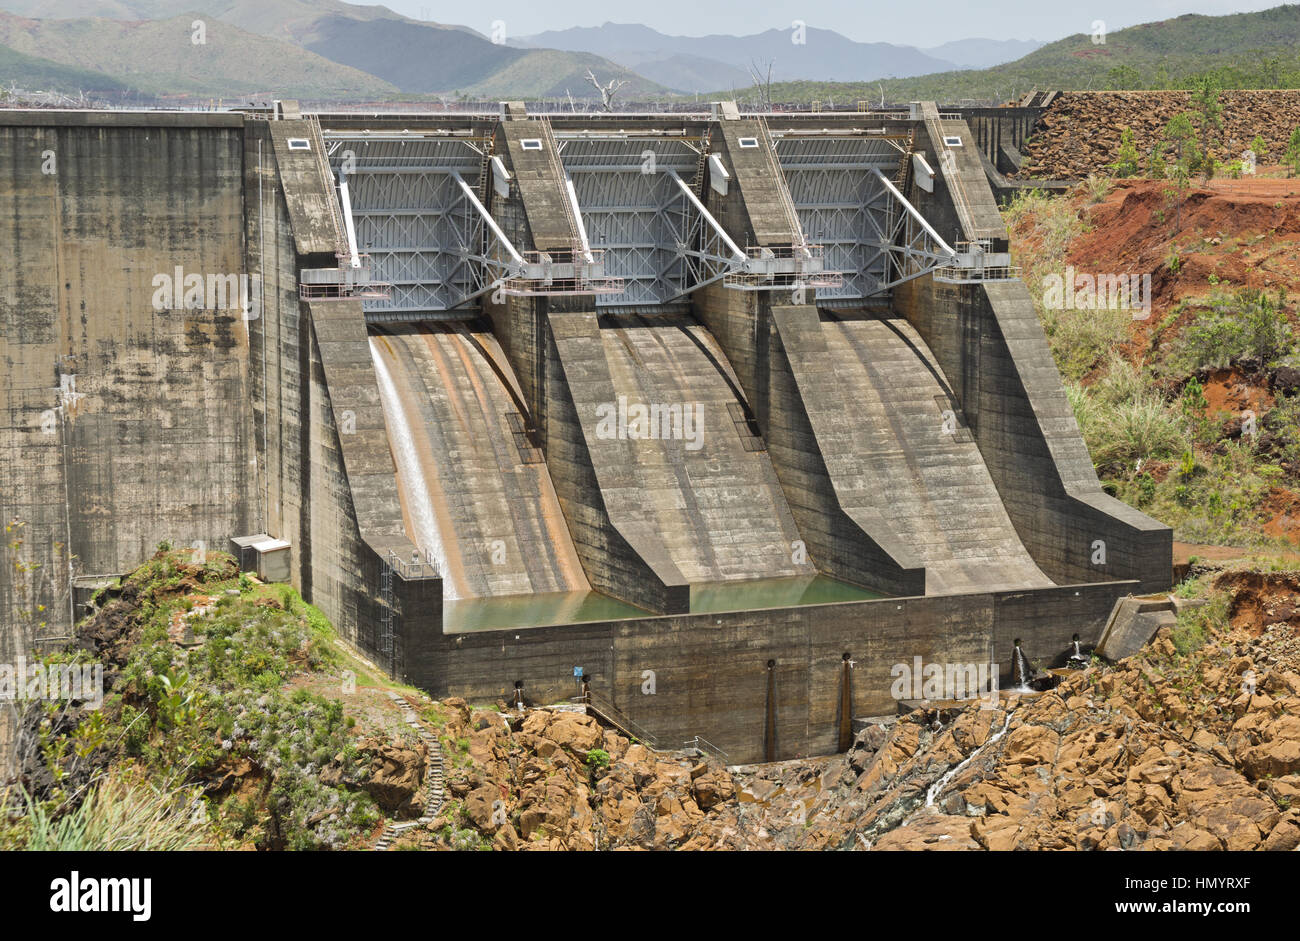 concrete arch Yate Dam spillway in New Caledonia - Stock Image